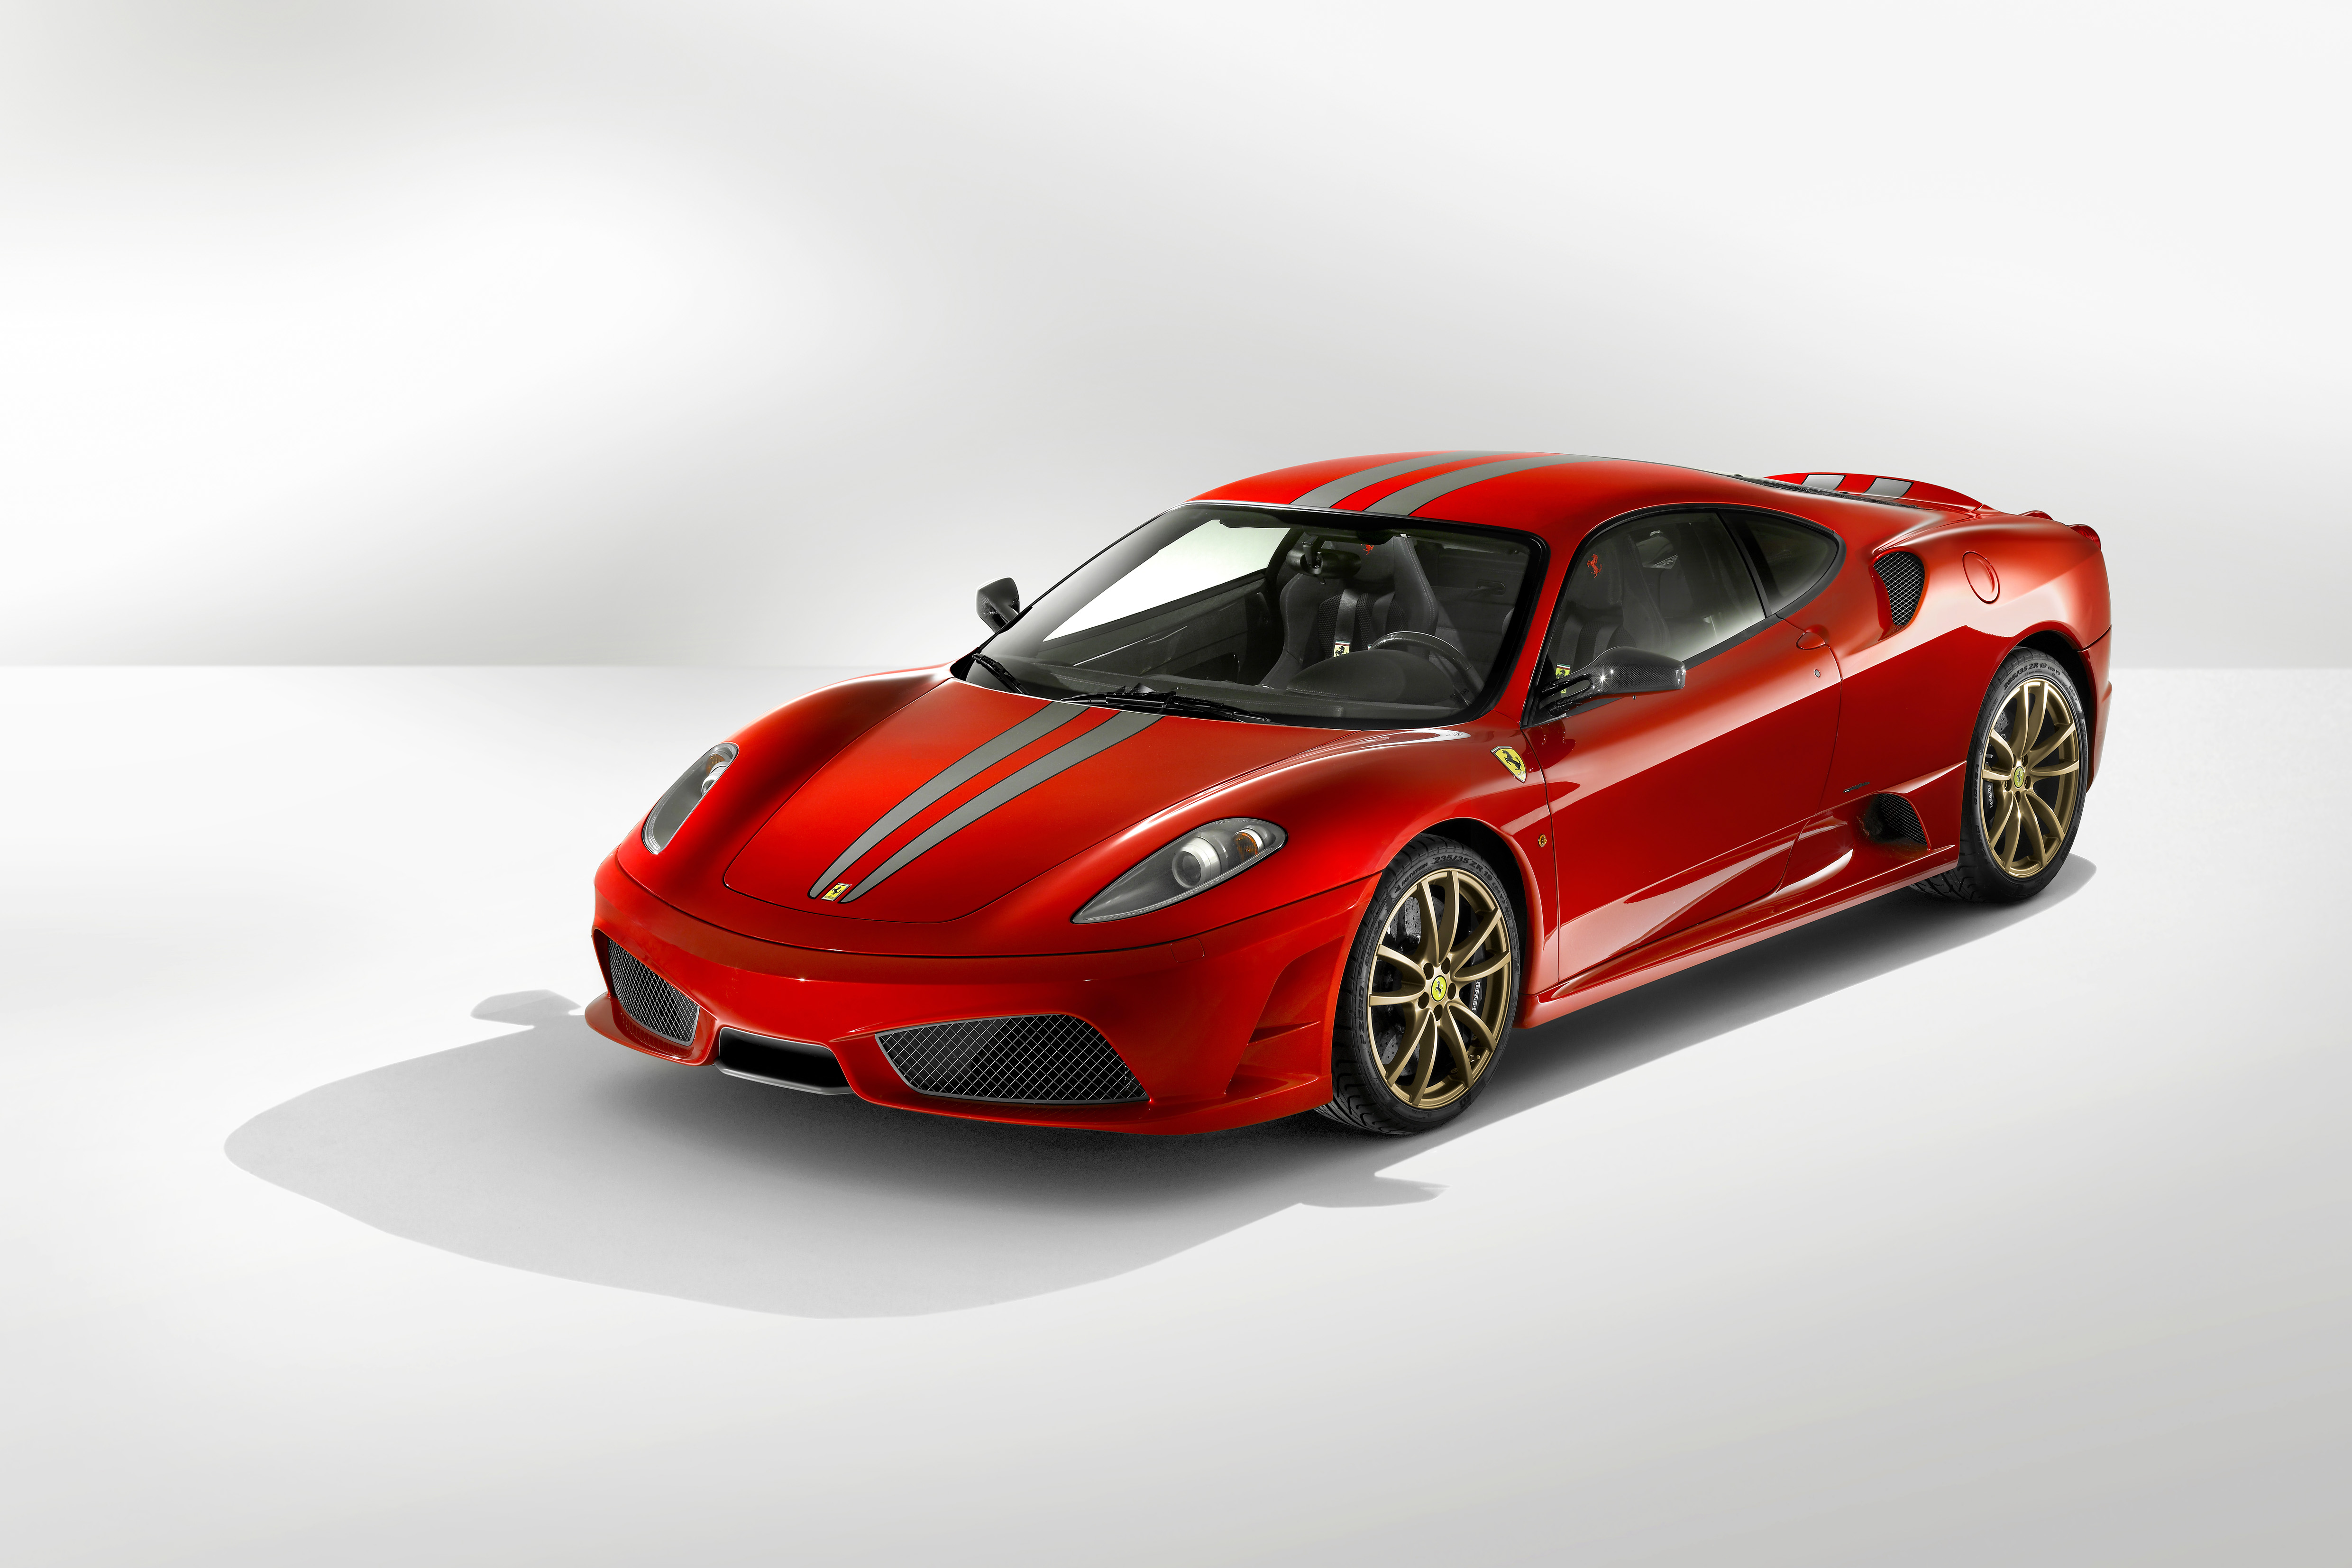 The 430 Scuderia was stripped-back for better performance